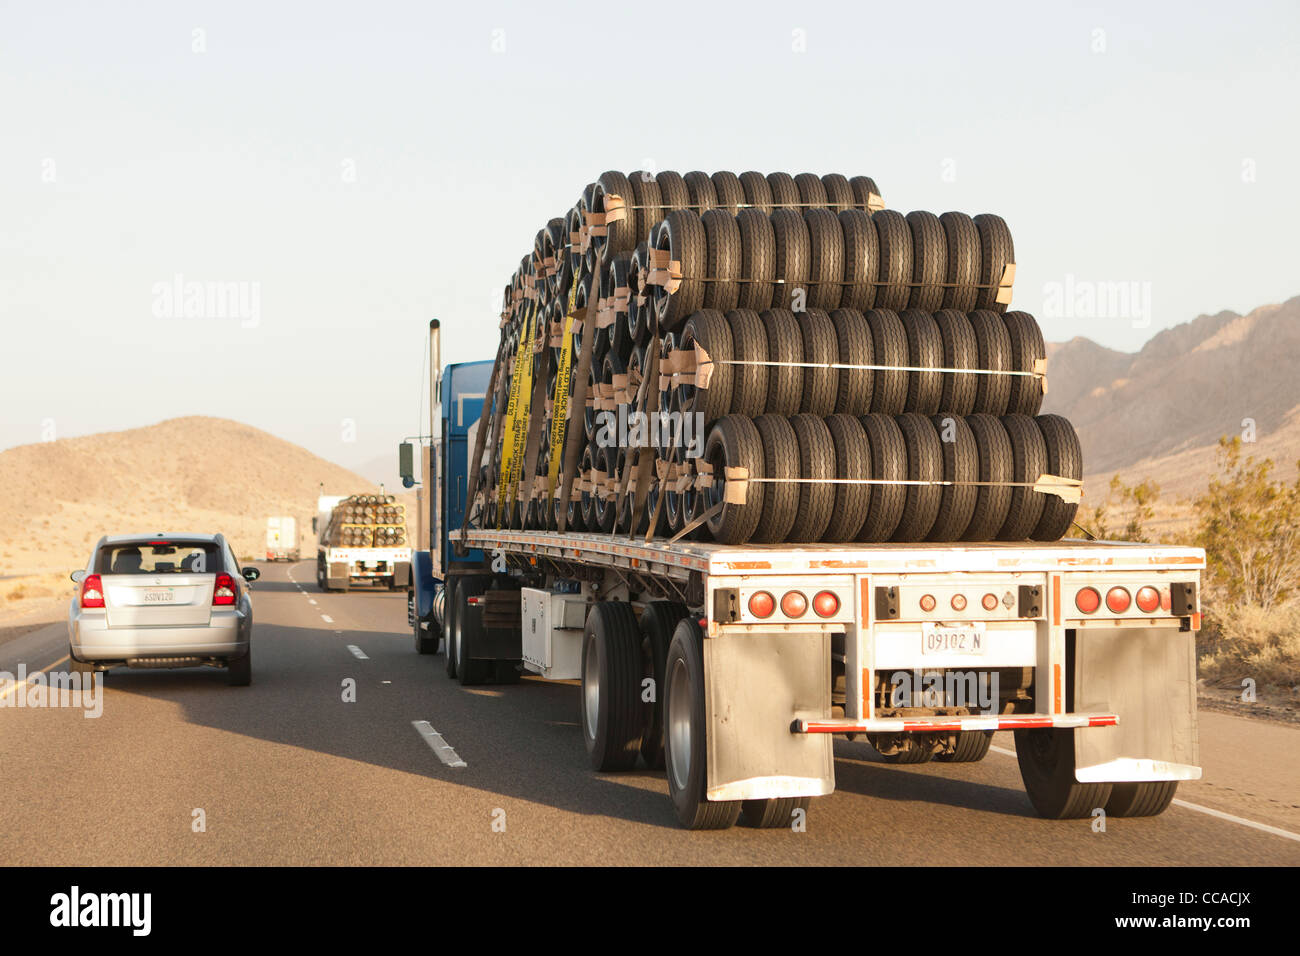 Tractor trailer carrying new tires - Stock Image